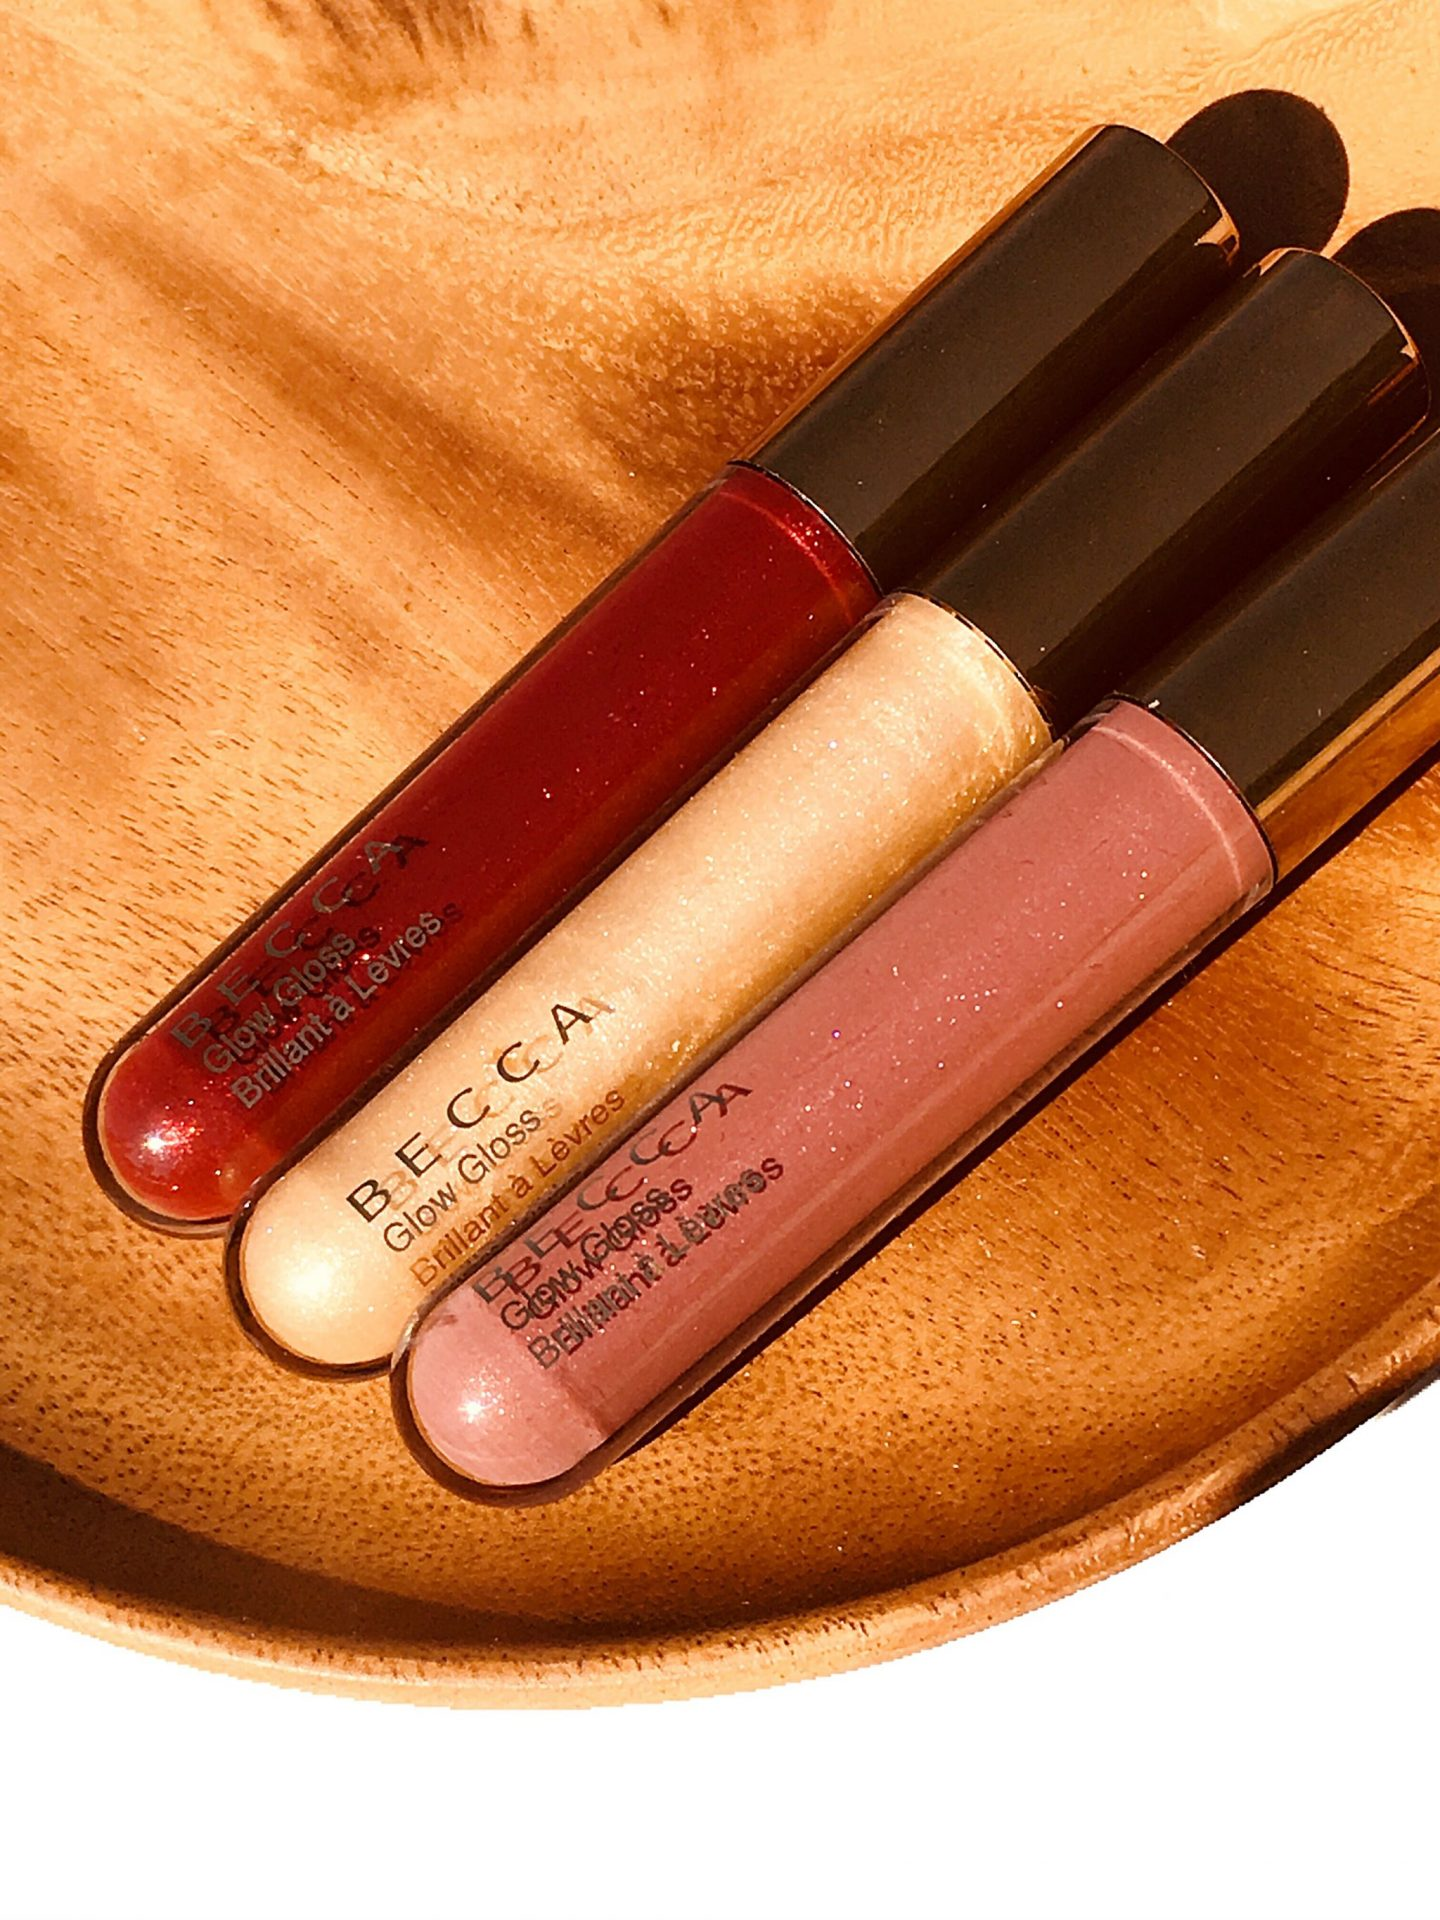 becca Cosmetics Volcano Collection review & swatches www.calibeaute.com